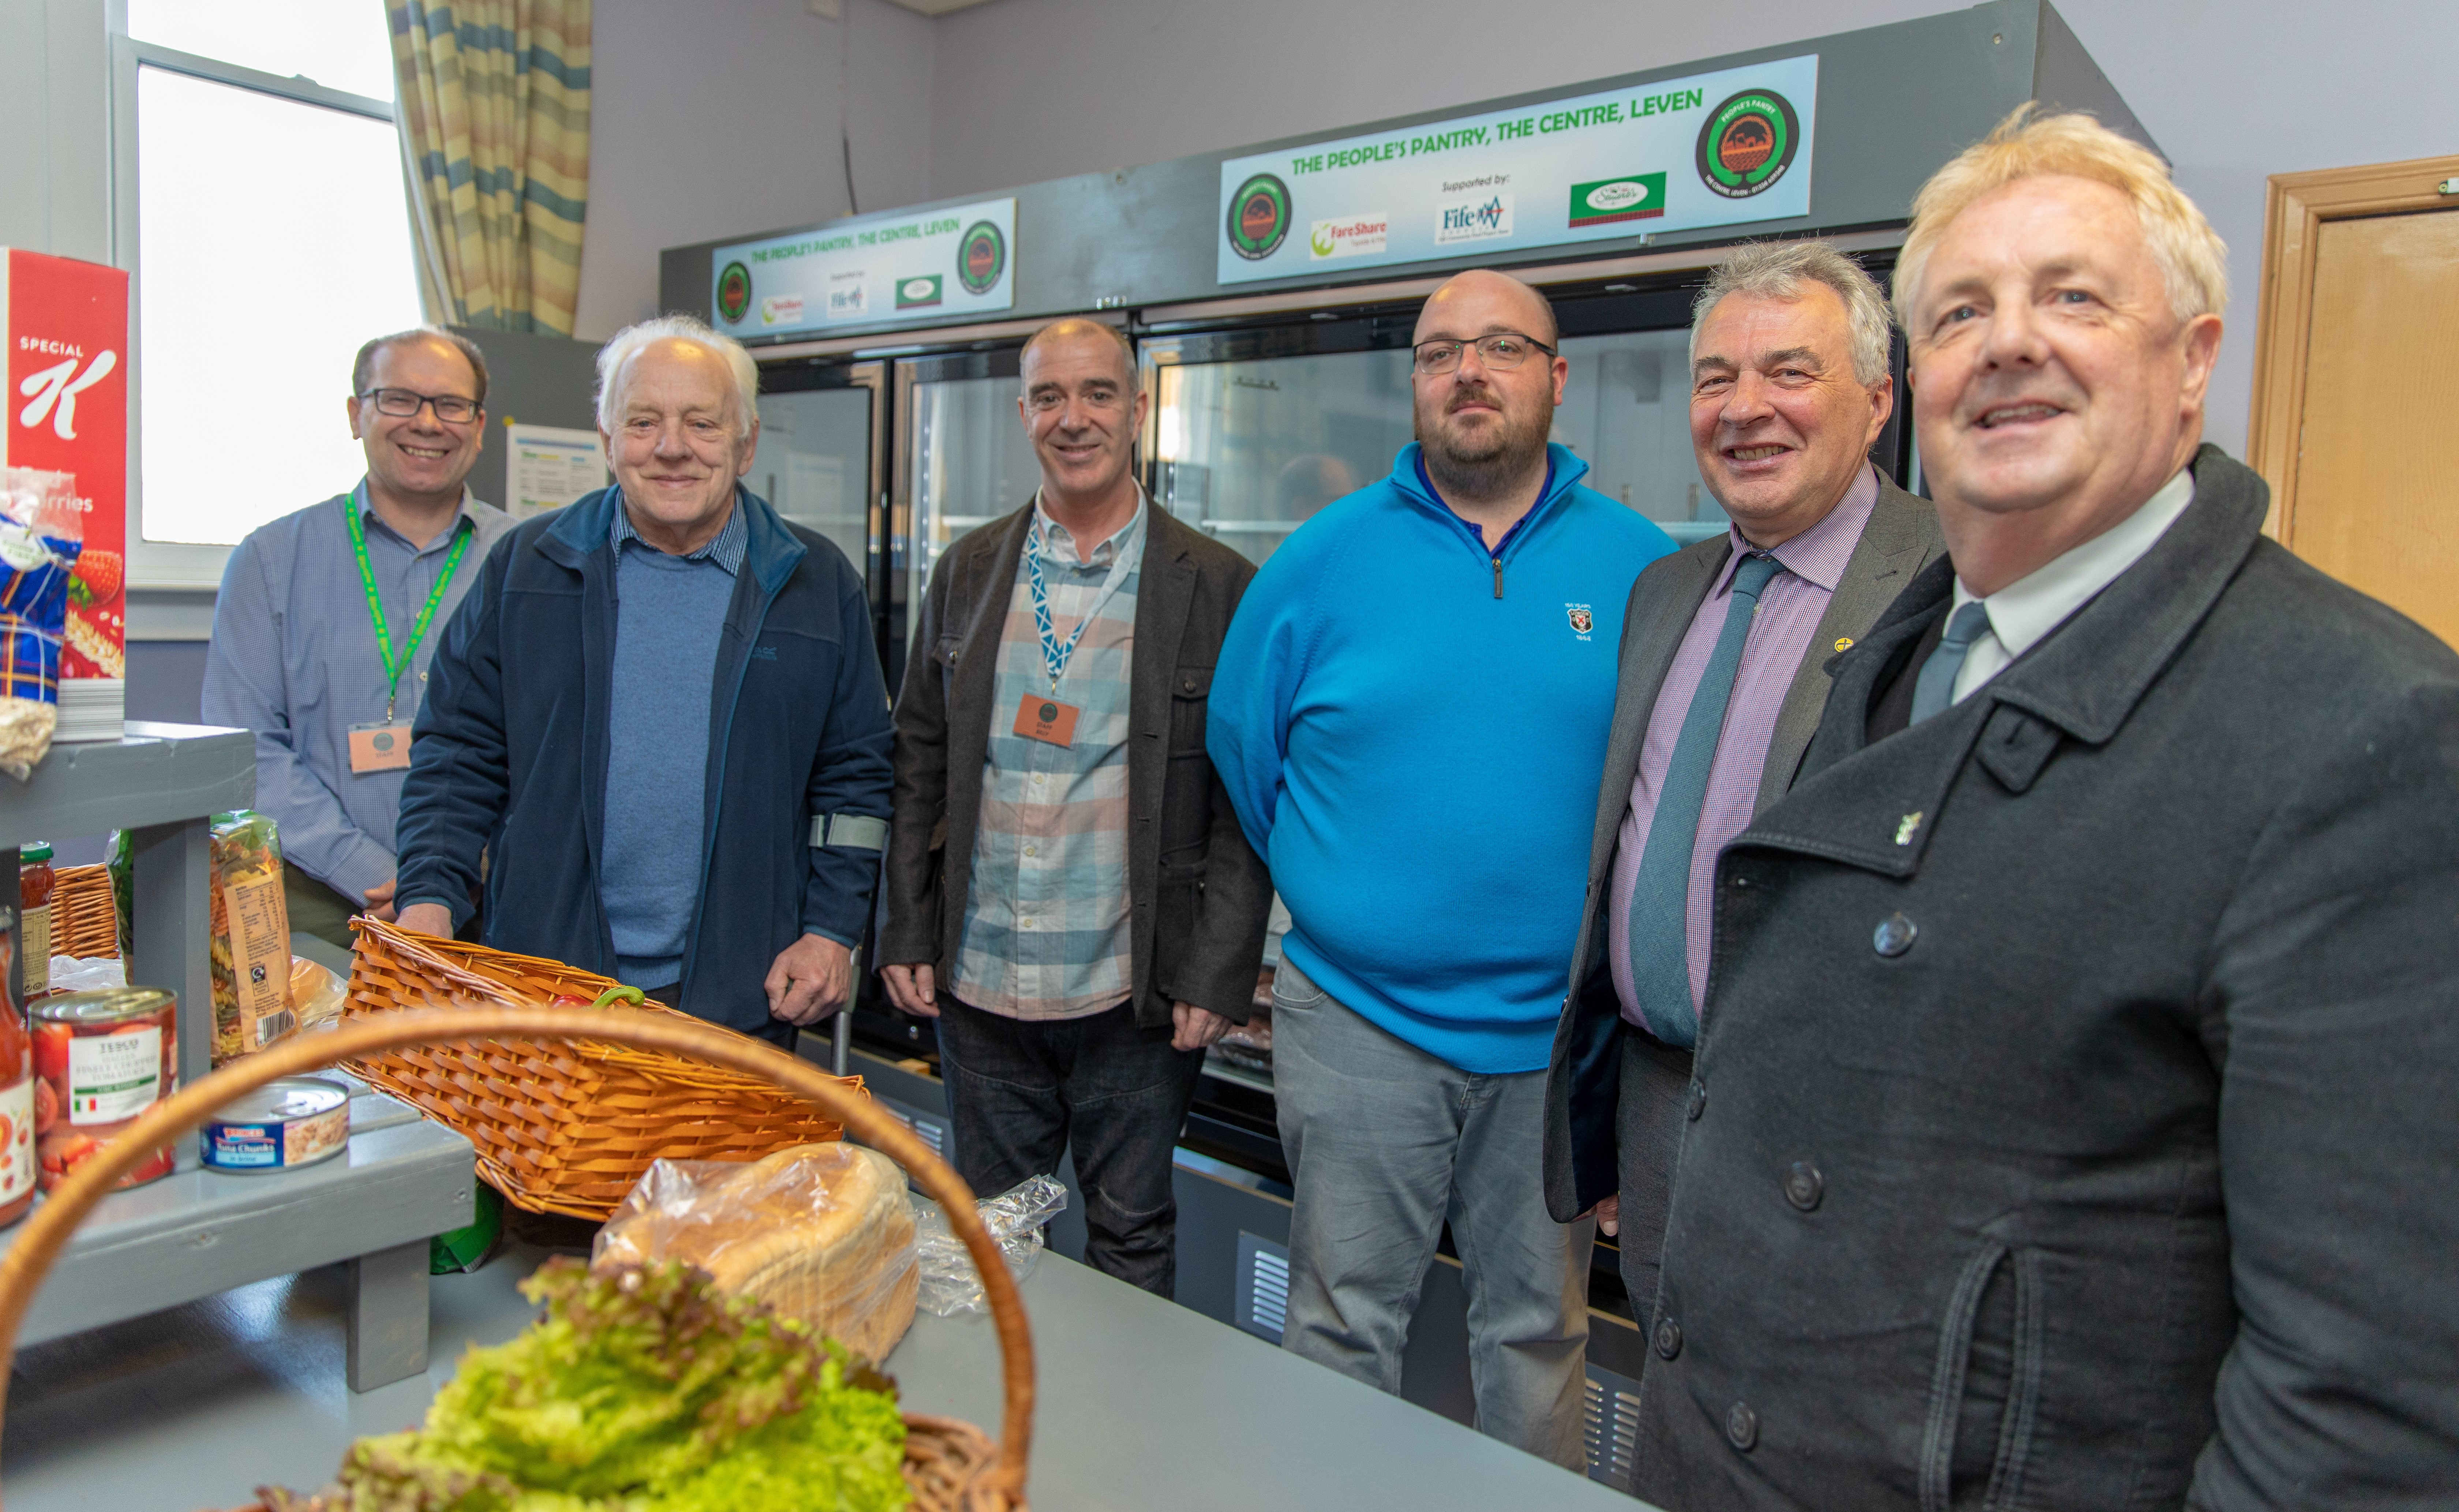 Councillor Ken Caldwell second left) and Councillor John OBrien at the launch with volunteers